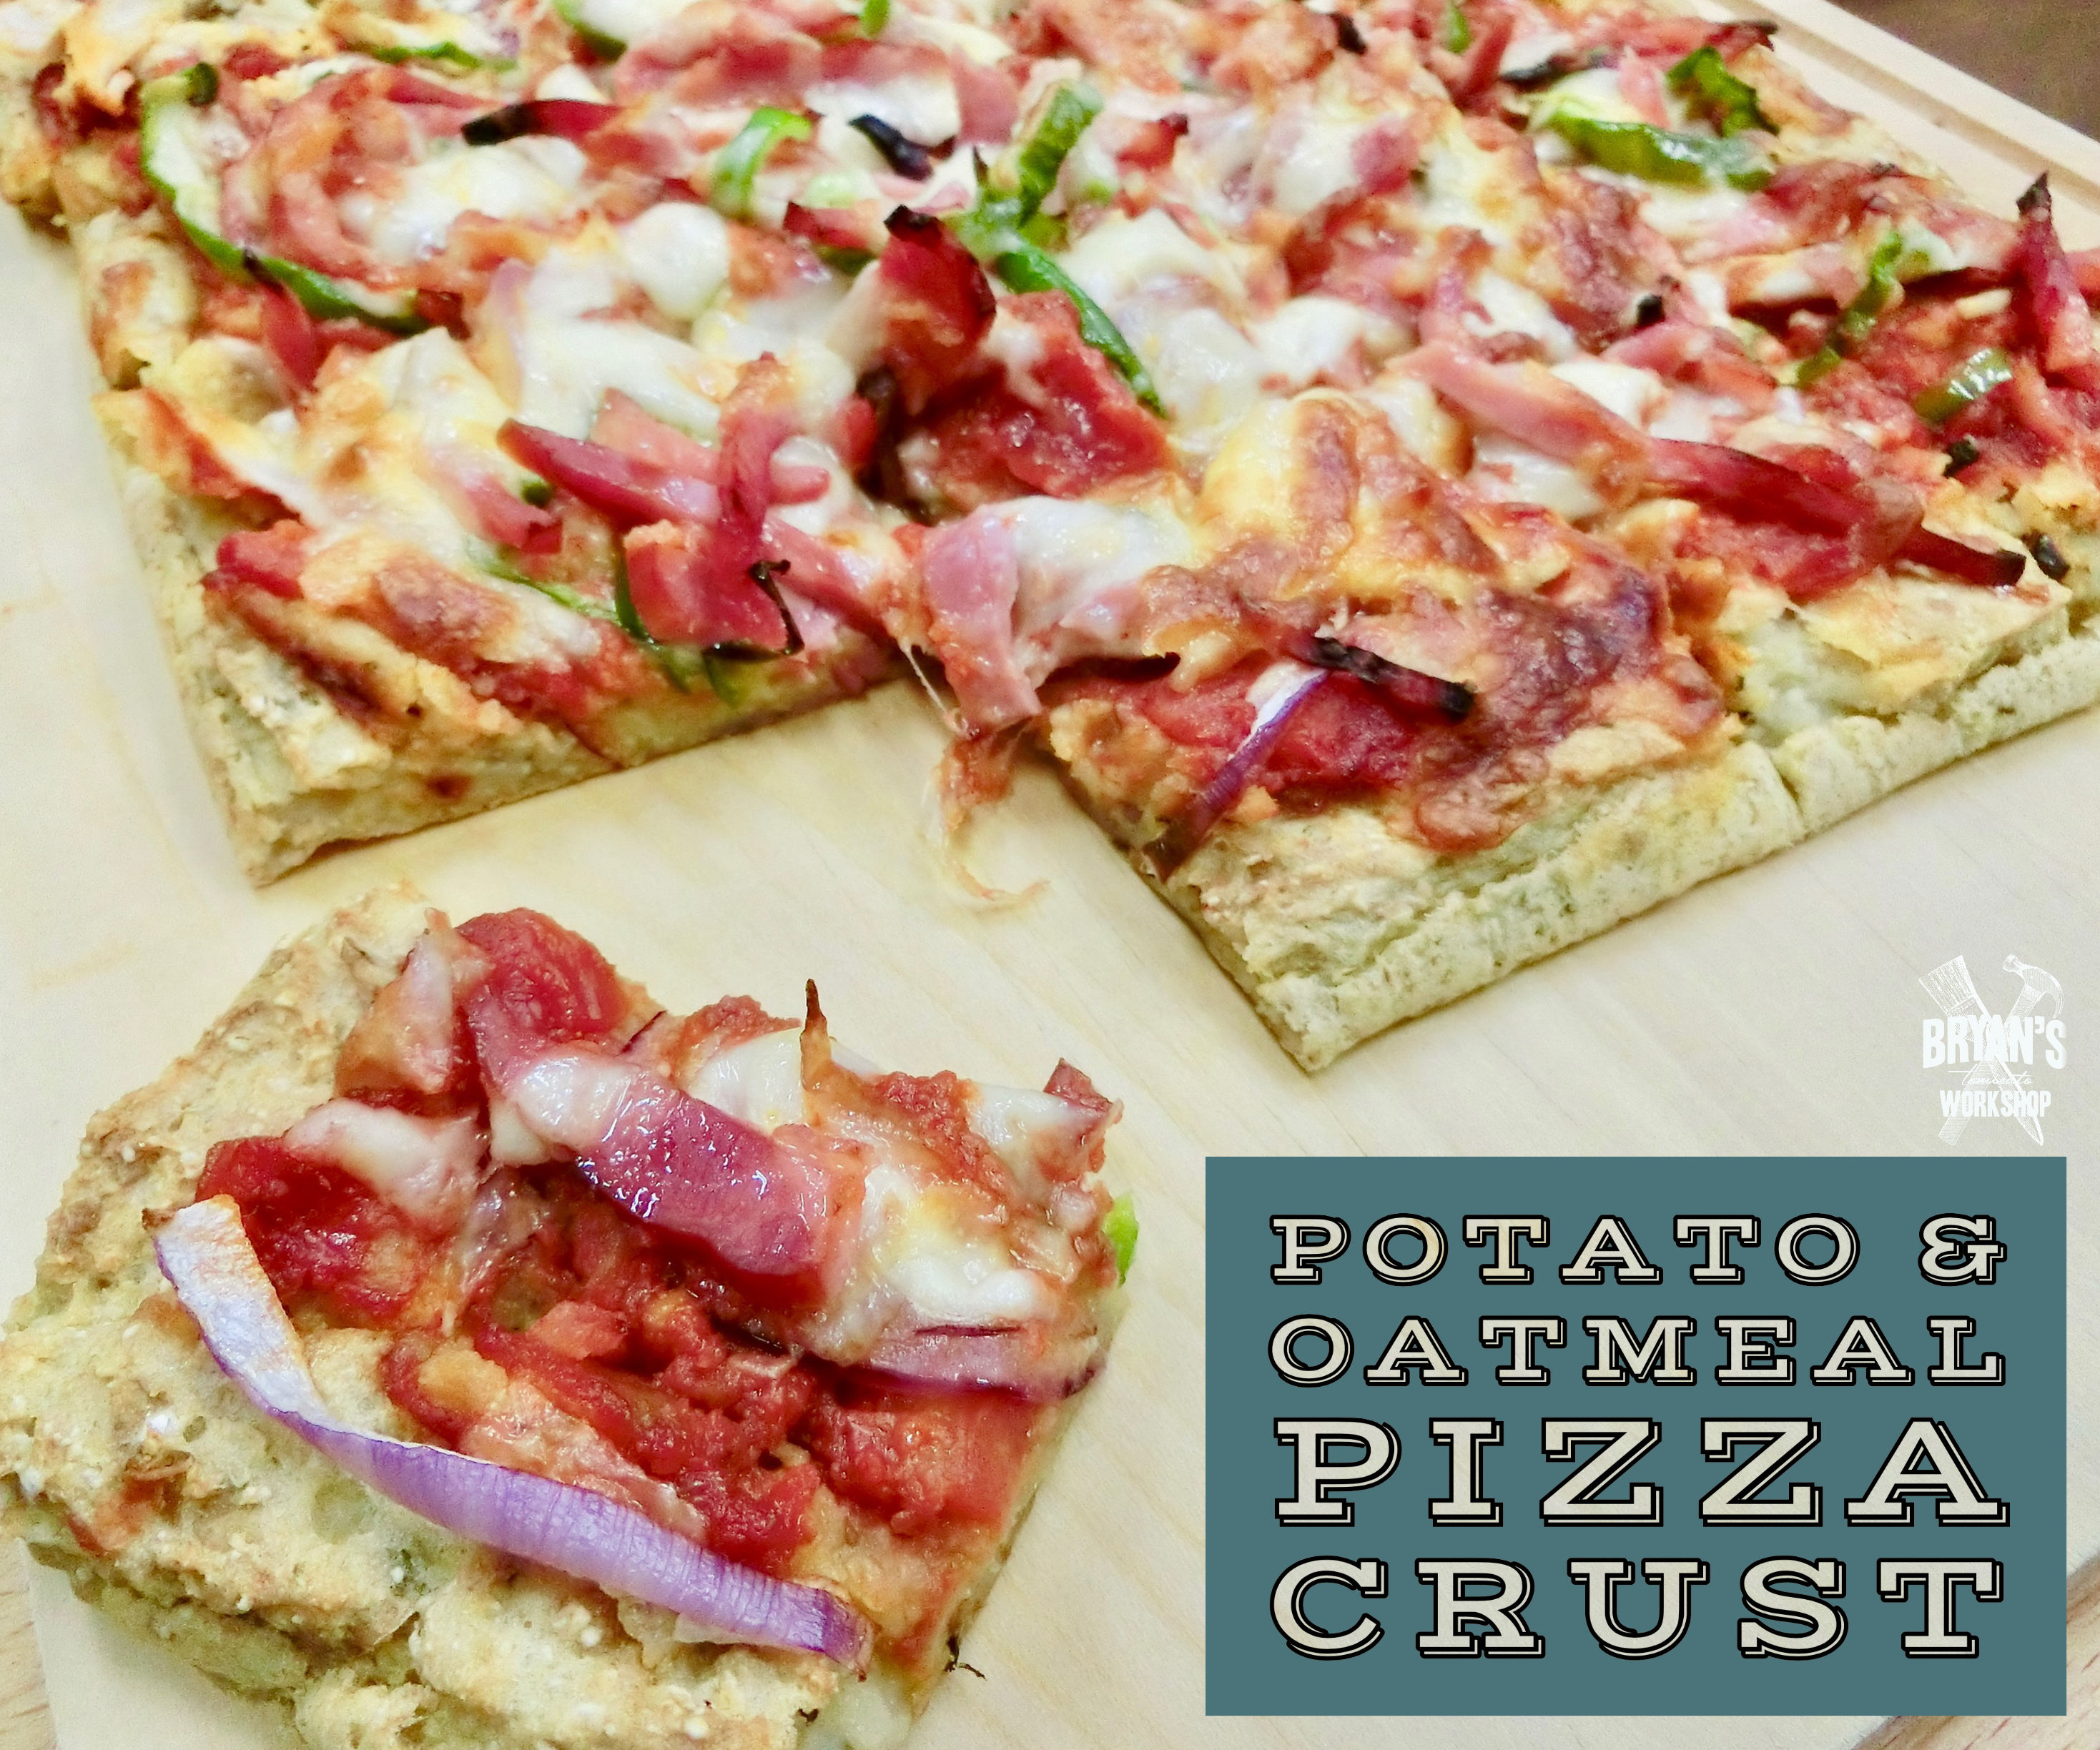 Potato & Oatmeal Pizza Crust (No Flour)